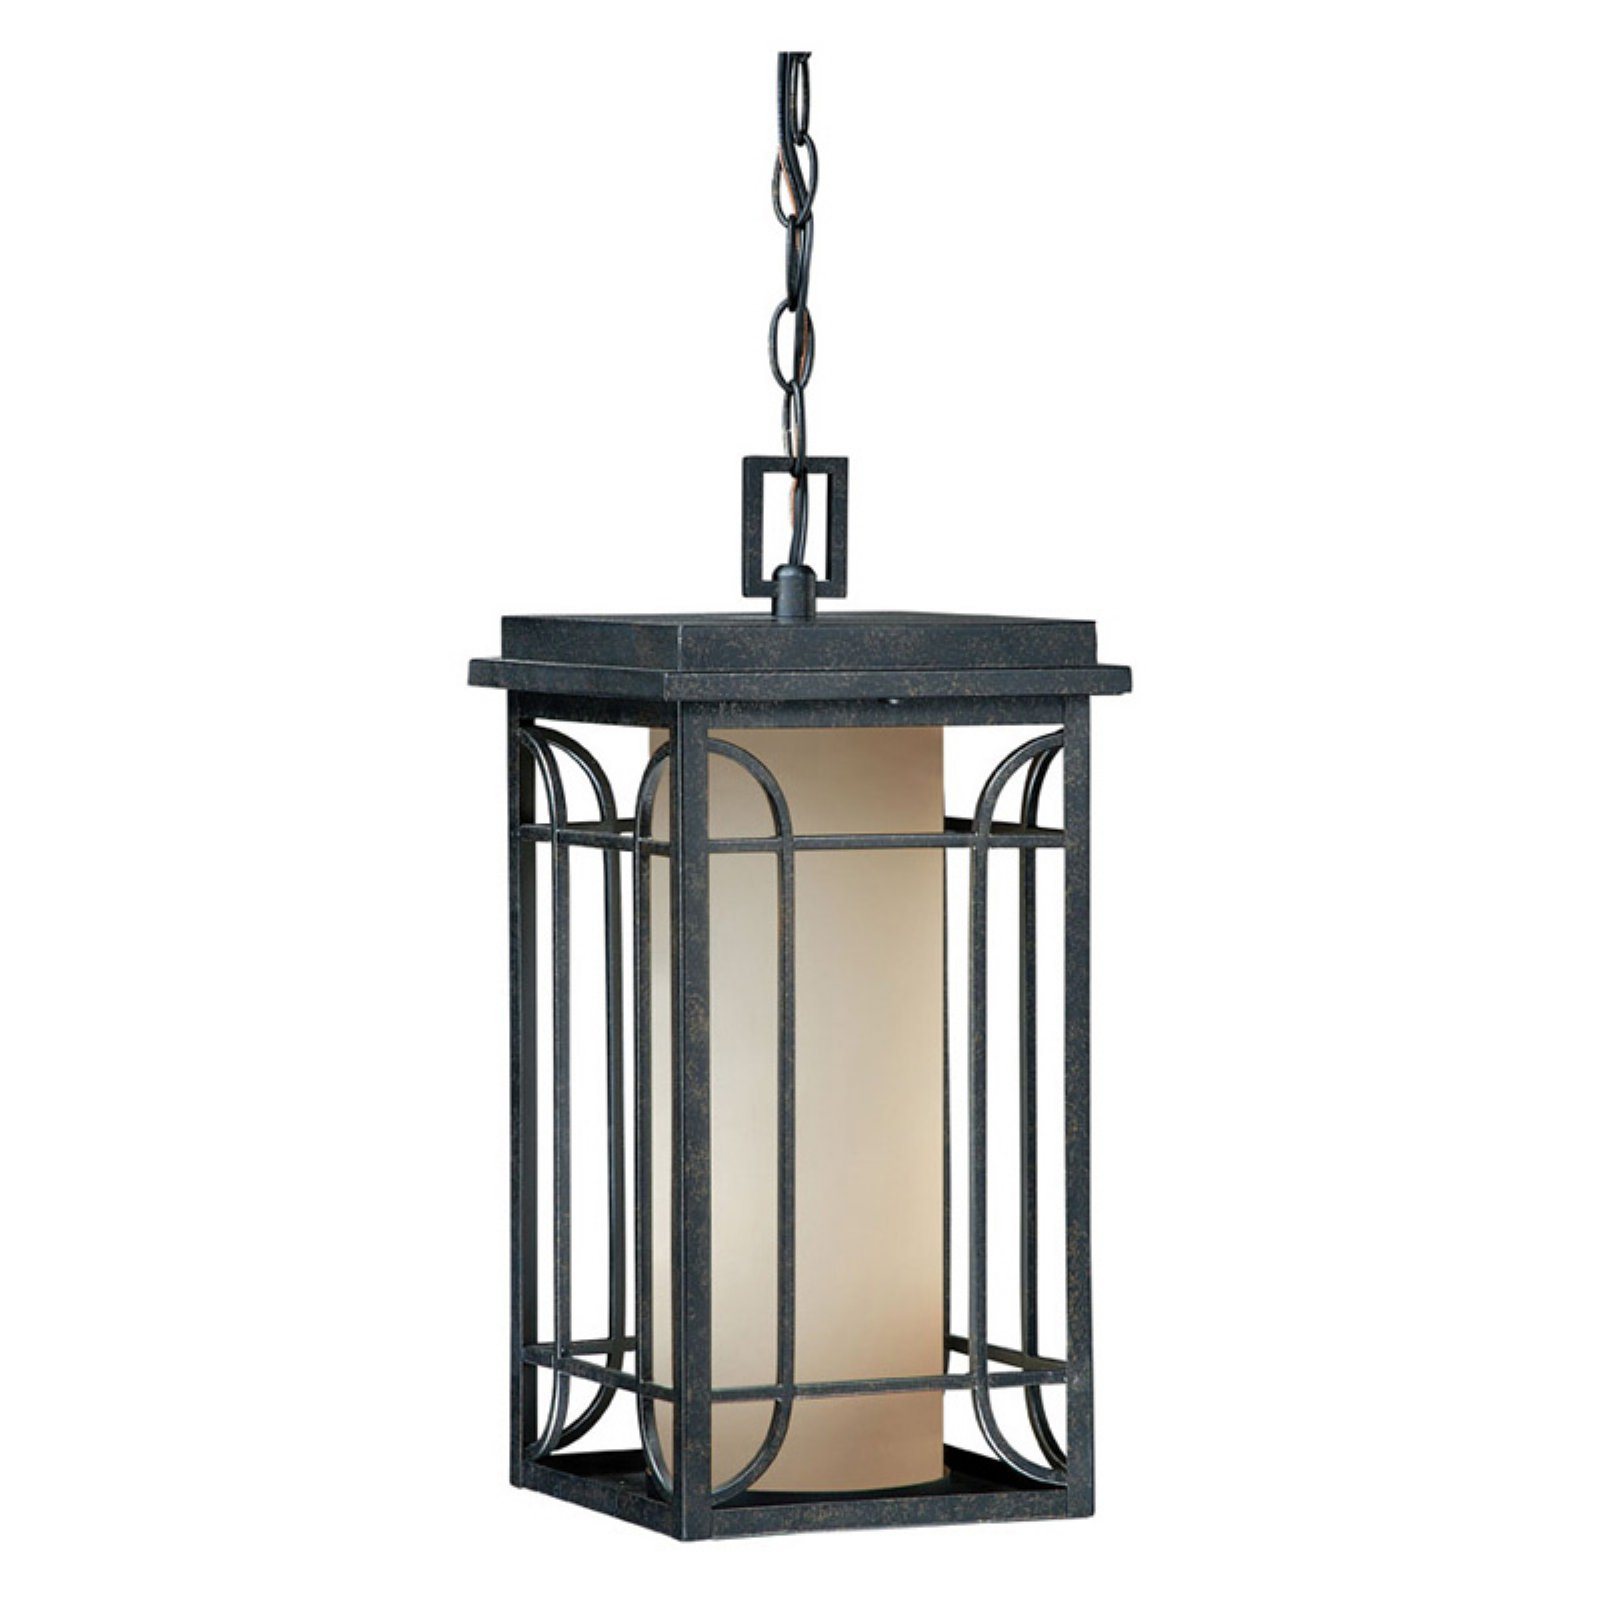 Vaxcel Newport Outdoor Pendant - 8W in. Gold Stone